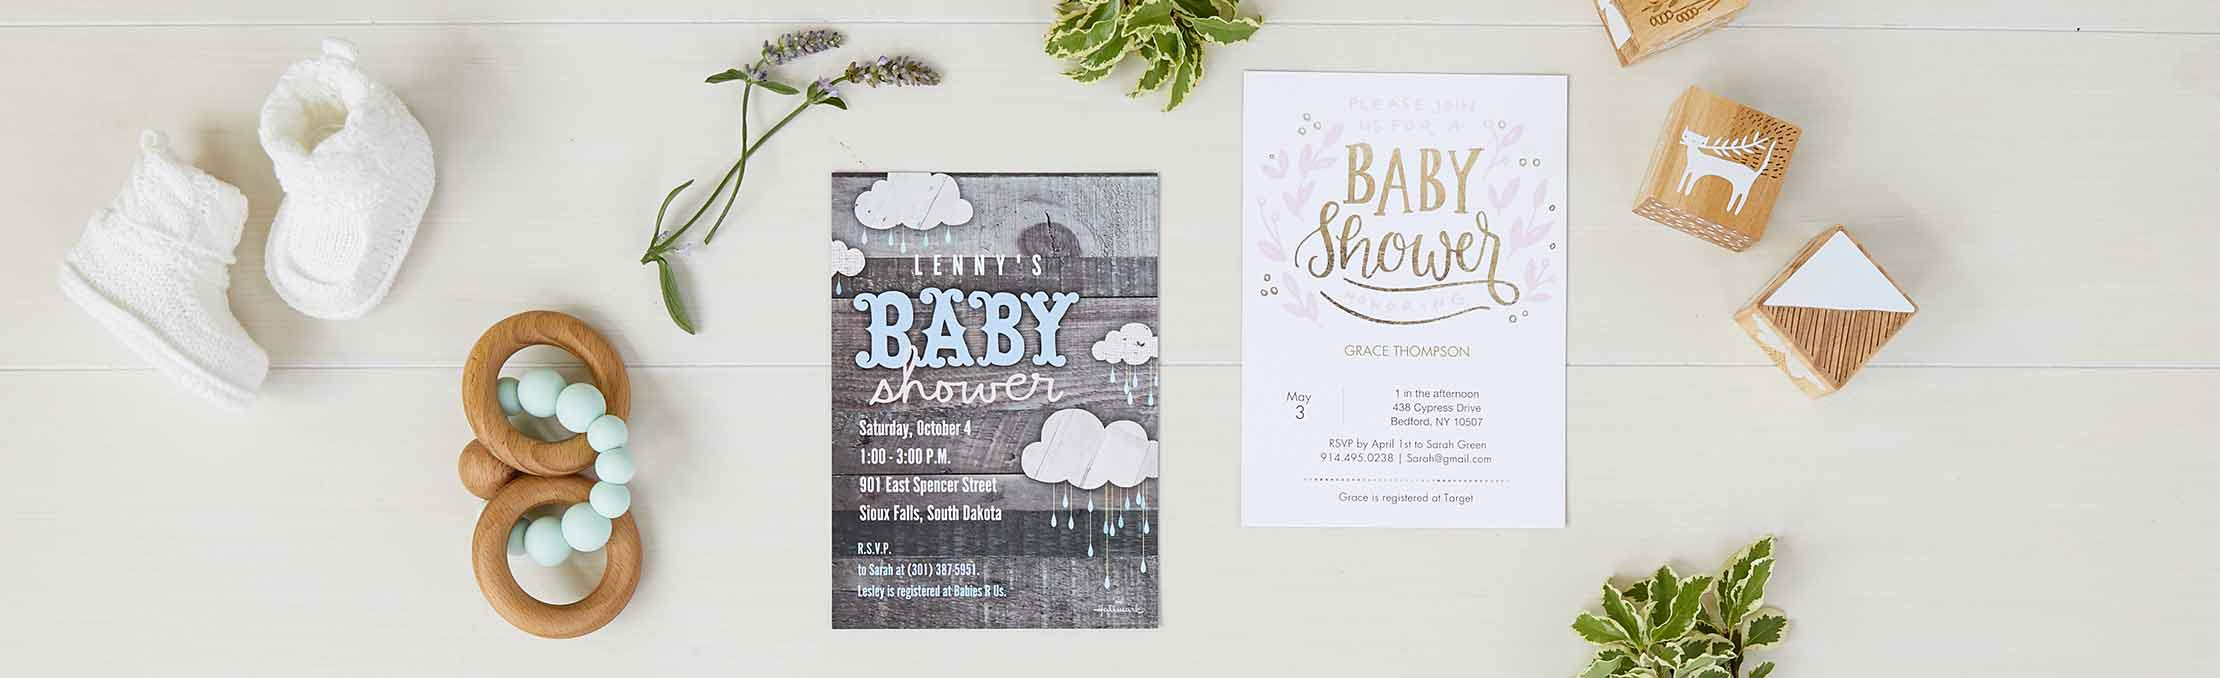 How to Word Invitations for Baby Shower for Boys, Girls and Twins